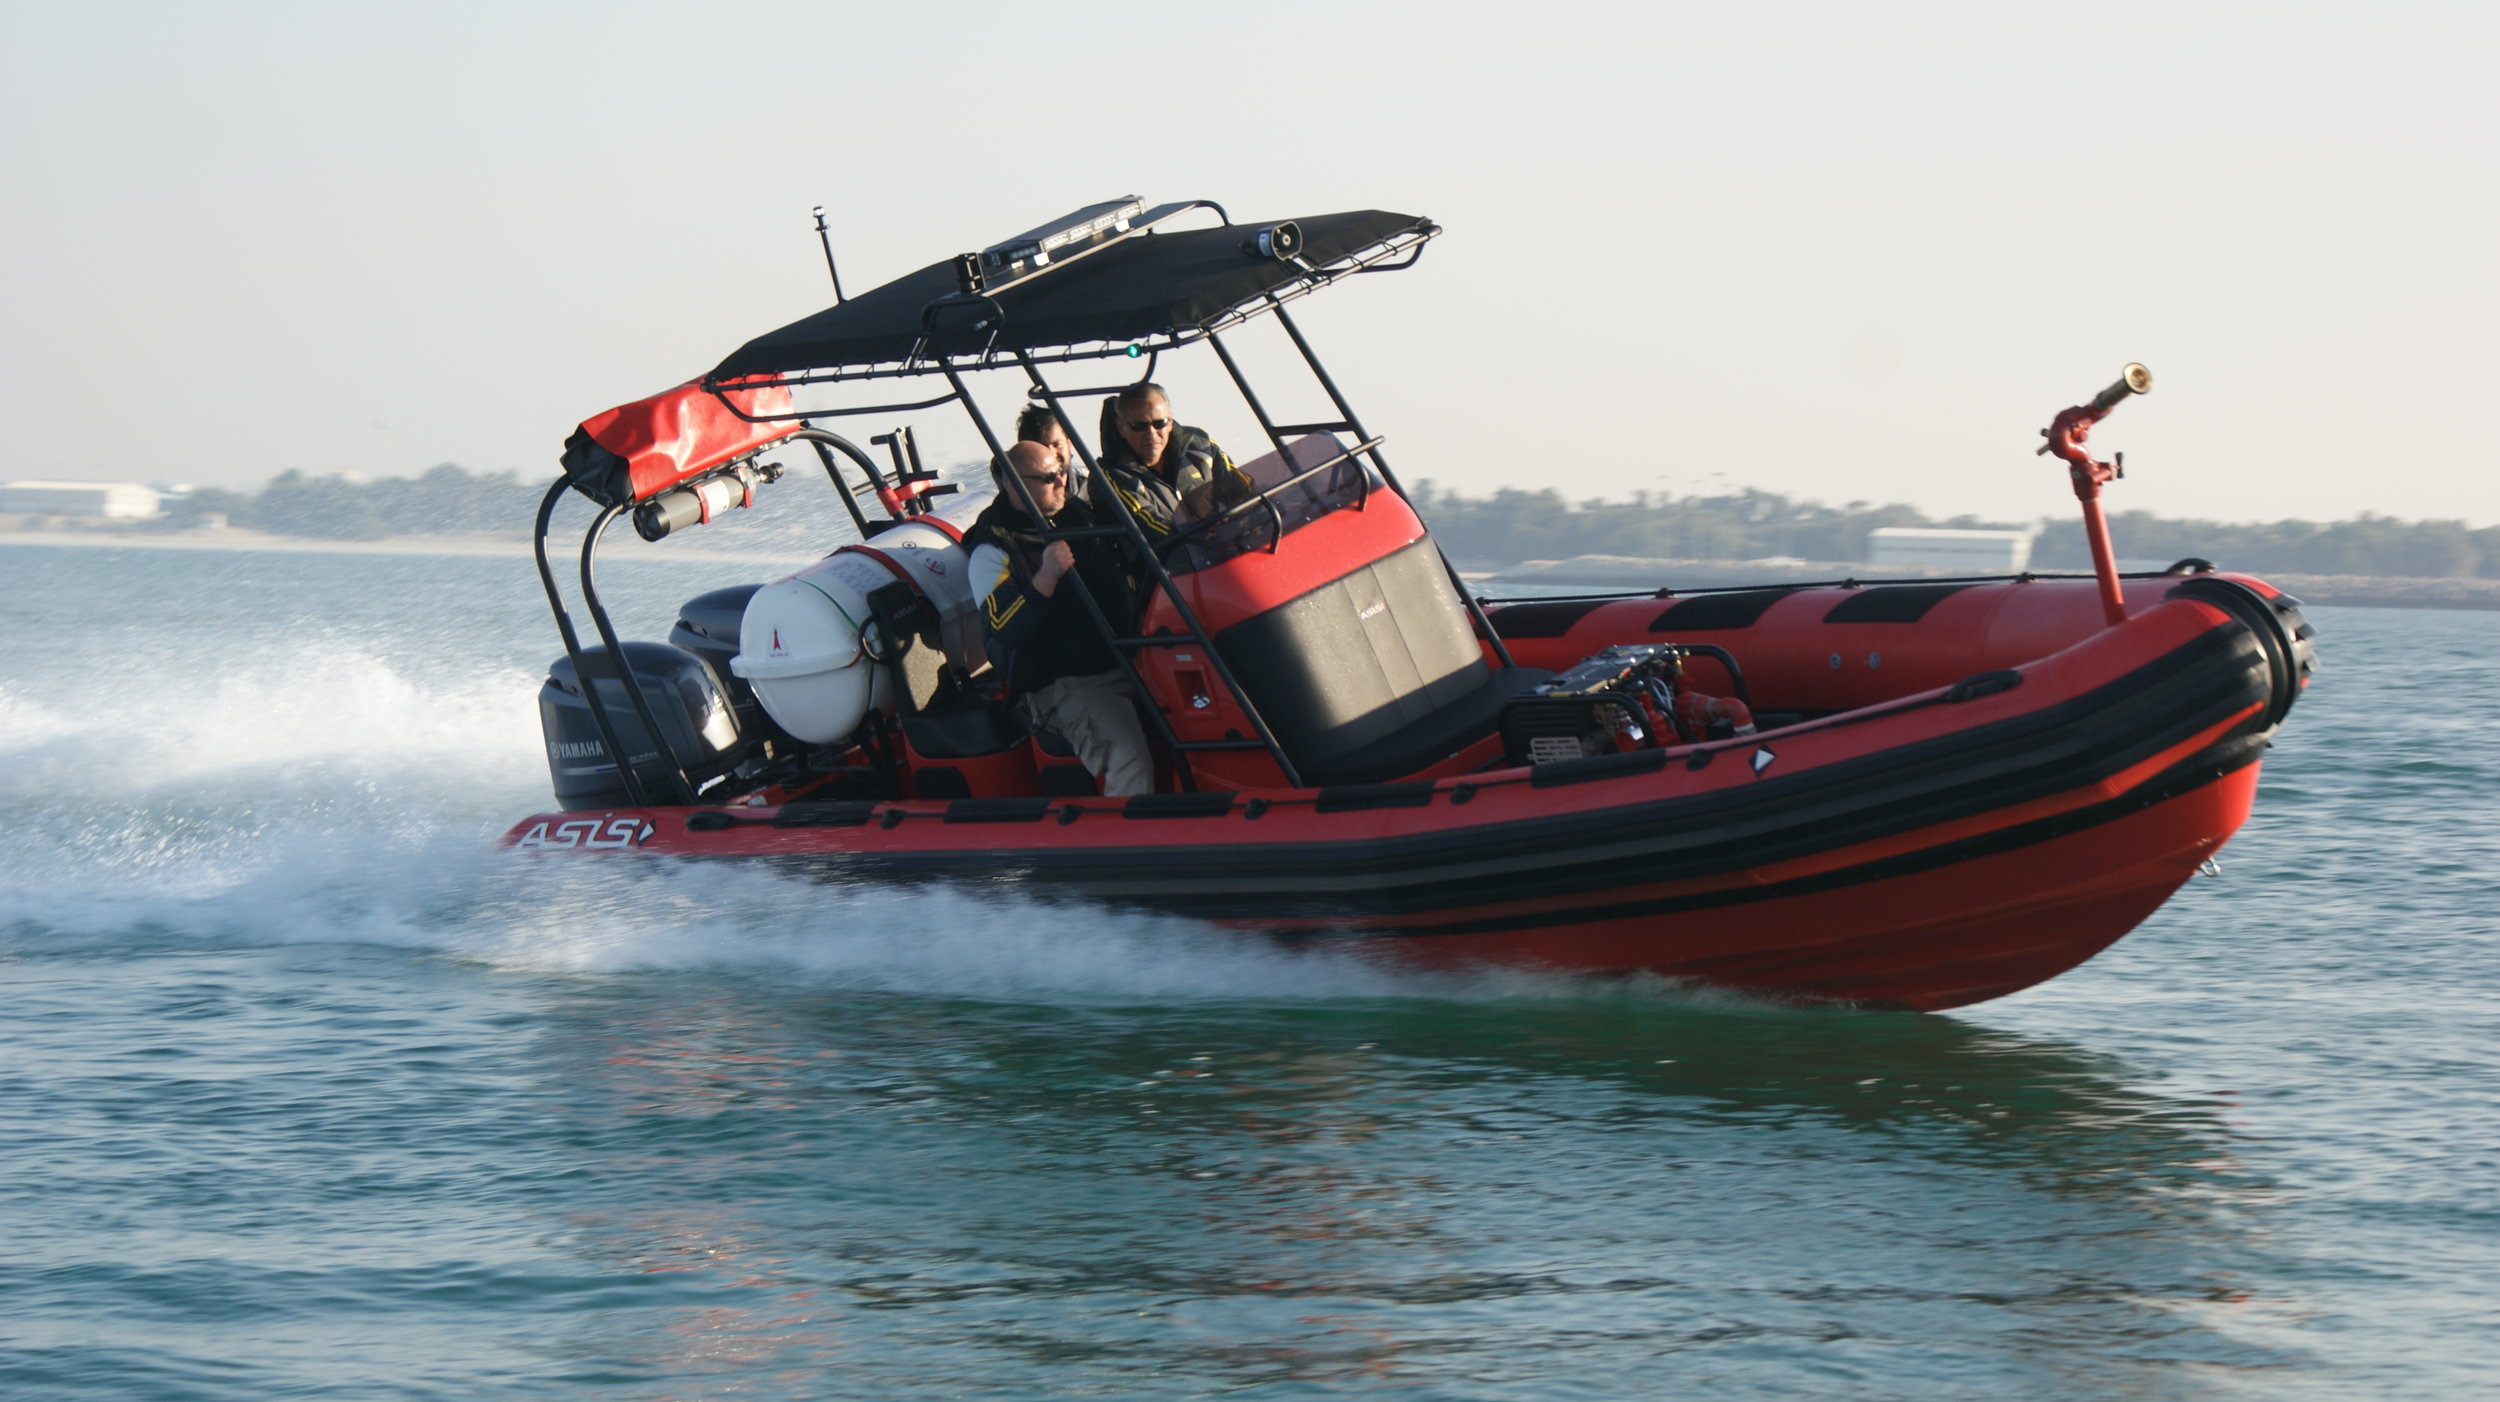 Fire Fighting RIB Boat 8m - SPECIFICATIONSLength: 780 cmBeam: 250 cmMaximum Power: 500 HPN°persons: 20